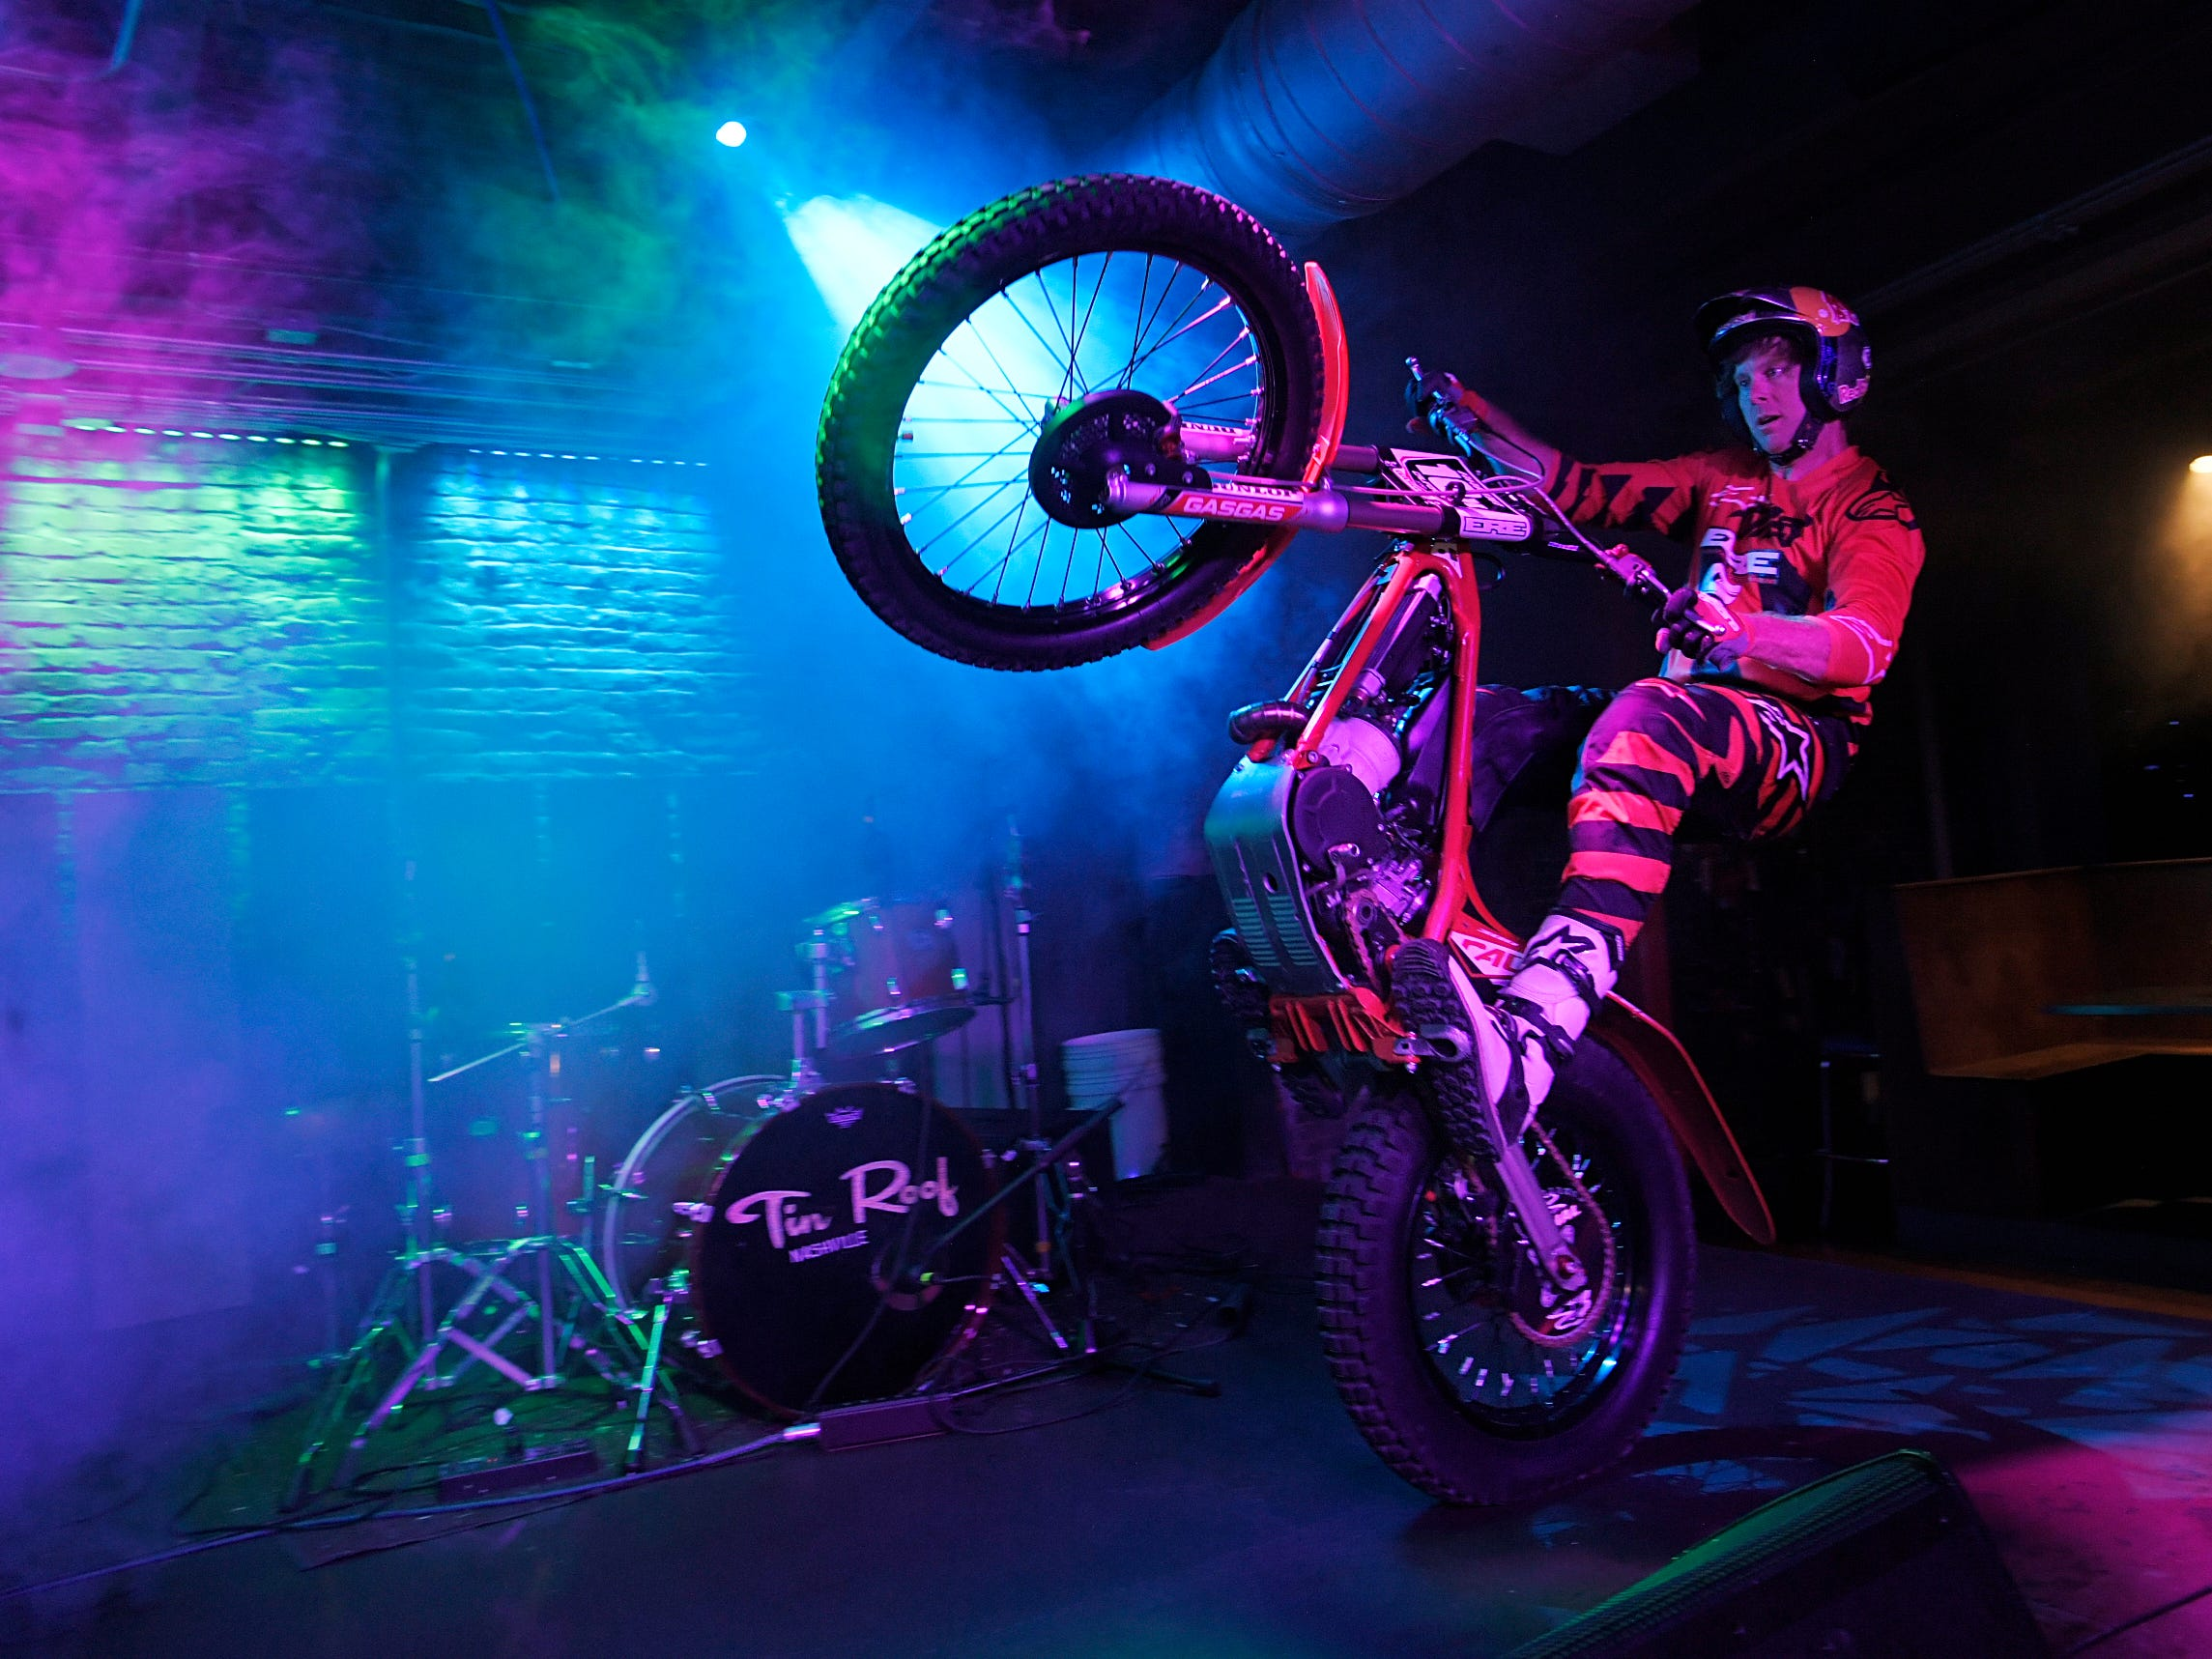 Trial motorcyclist Geoff Aaron pops a wheelie on the stage at the Tin Roof on Broadway on Thursday, April 4, 2019. The trials and endurocross legend performed stunts in Nashville bars ahead of the Motocross-Supercross event on Friday.